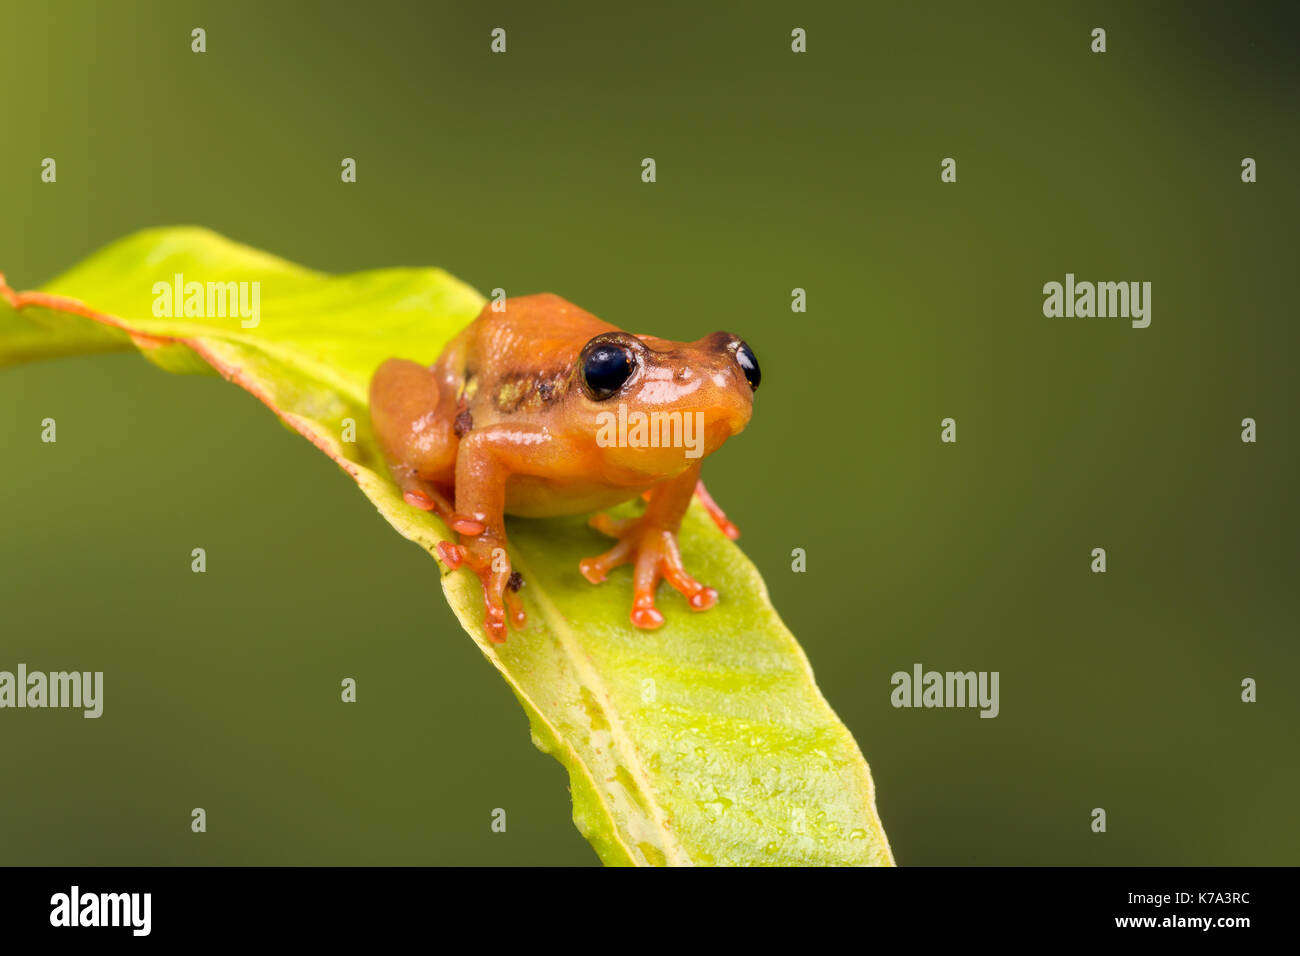 Bright orange golden sedge frog sitting on a green leaf - Stock Image